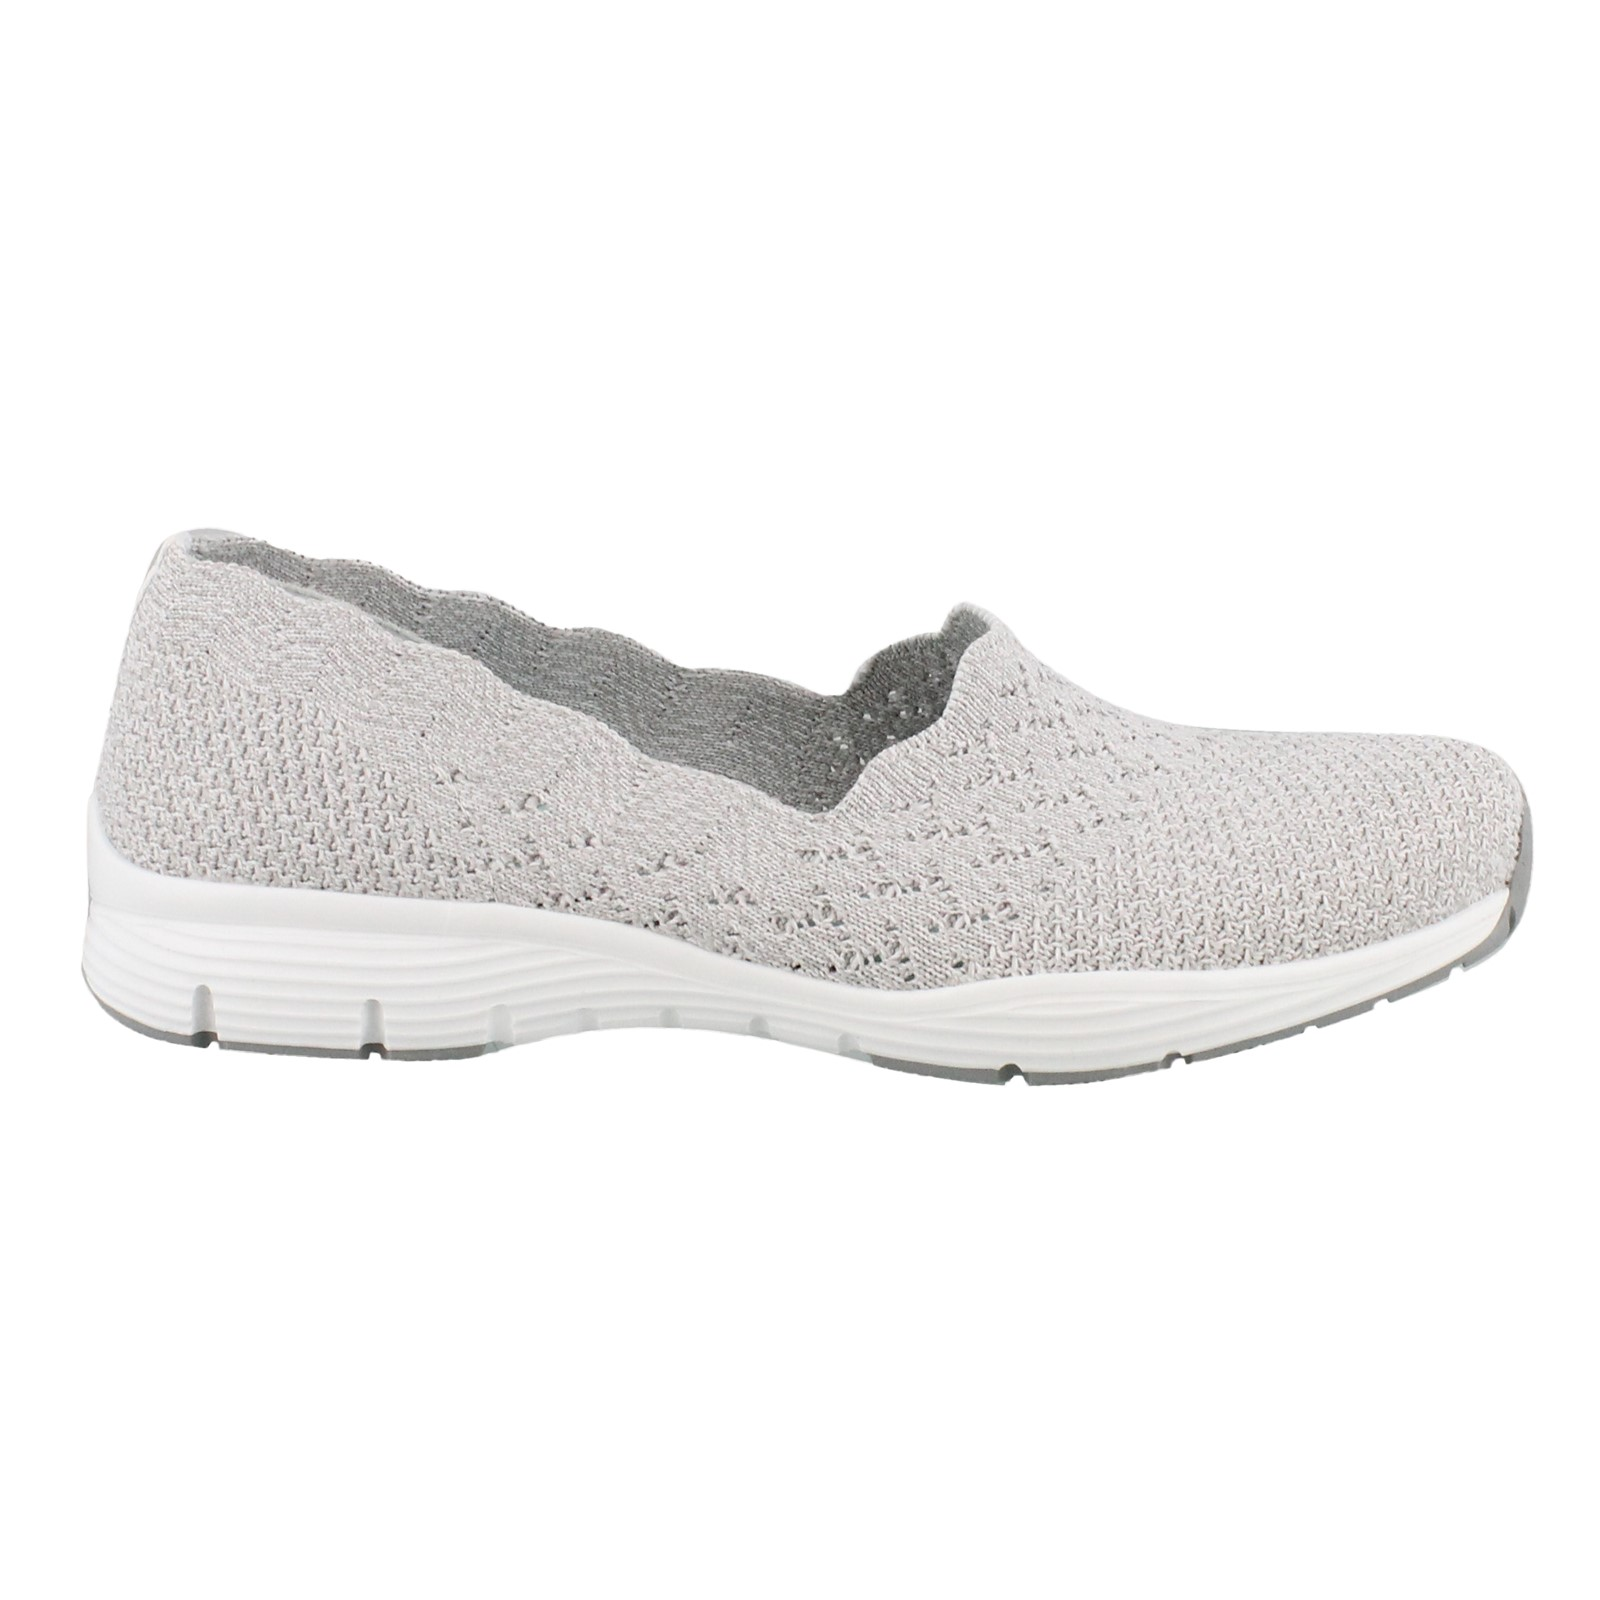 Women's Skechers, Seager Stat Slip on Shoes